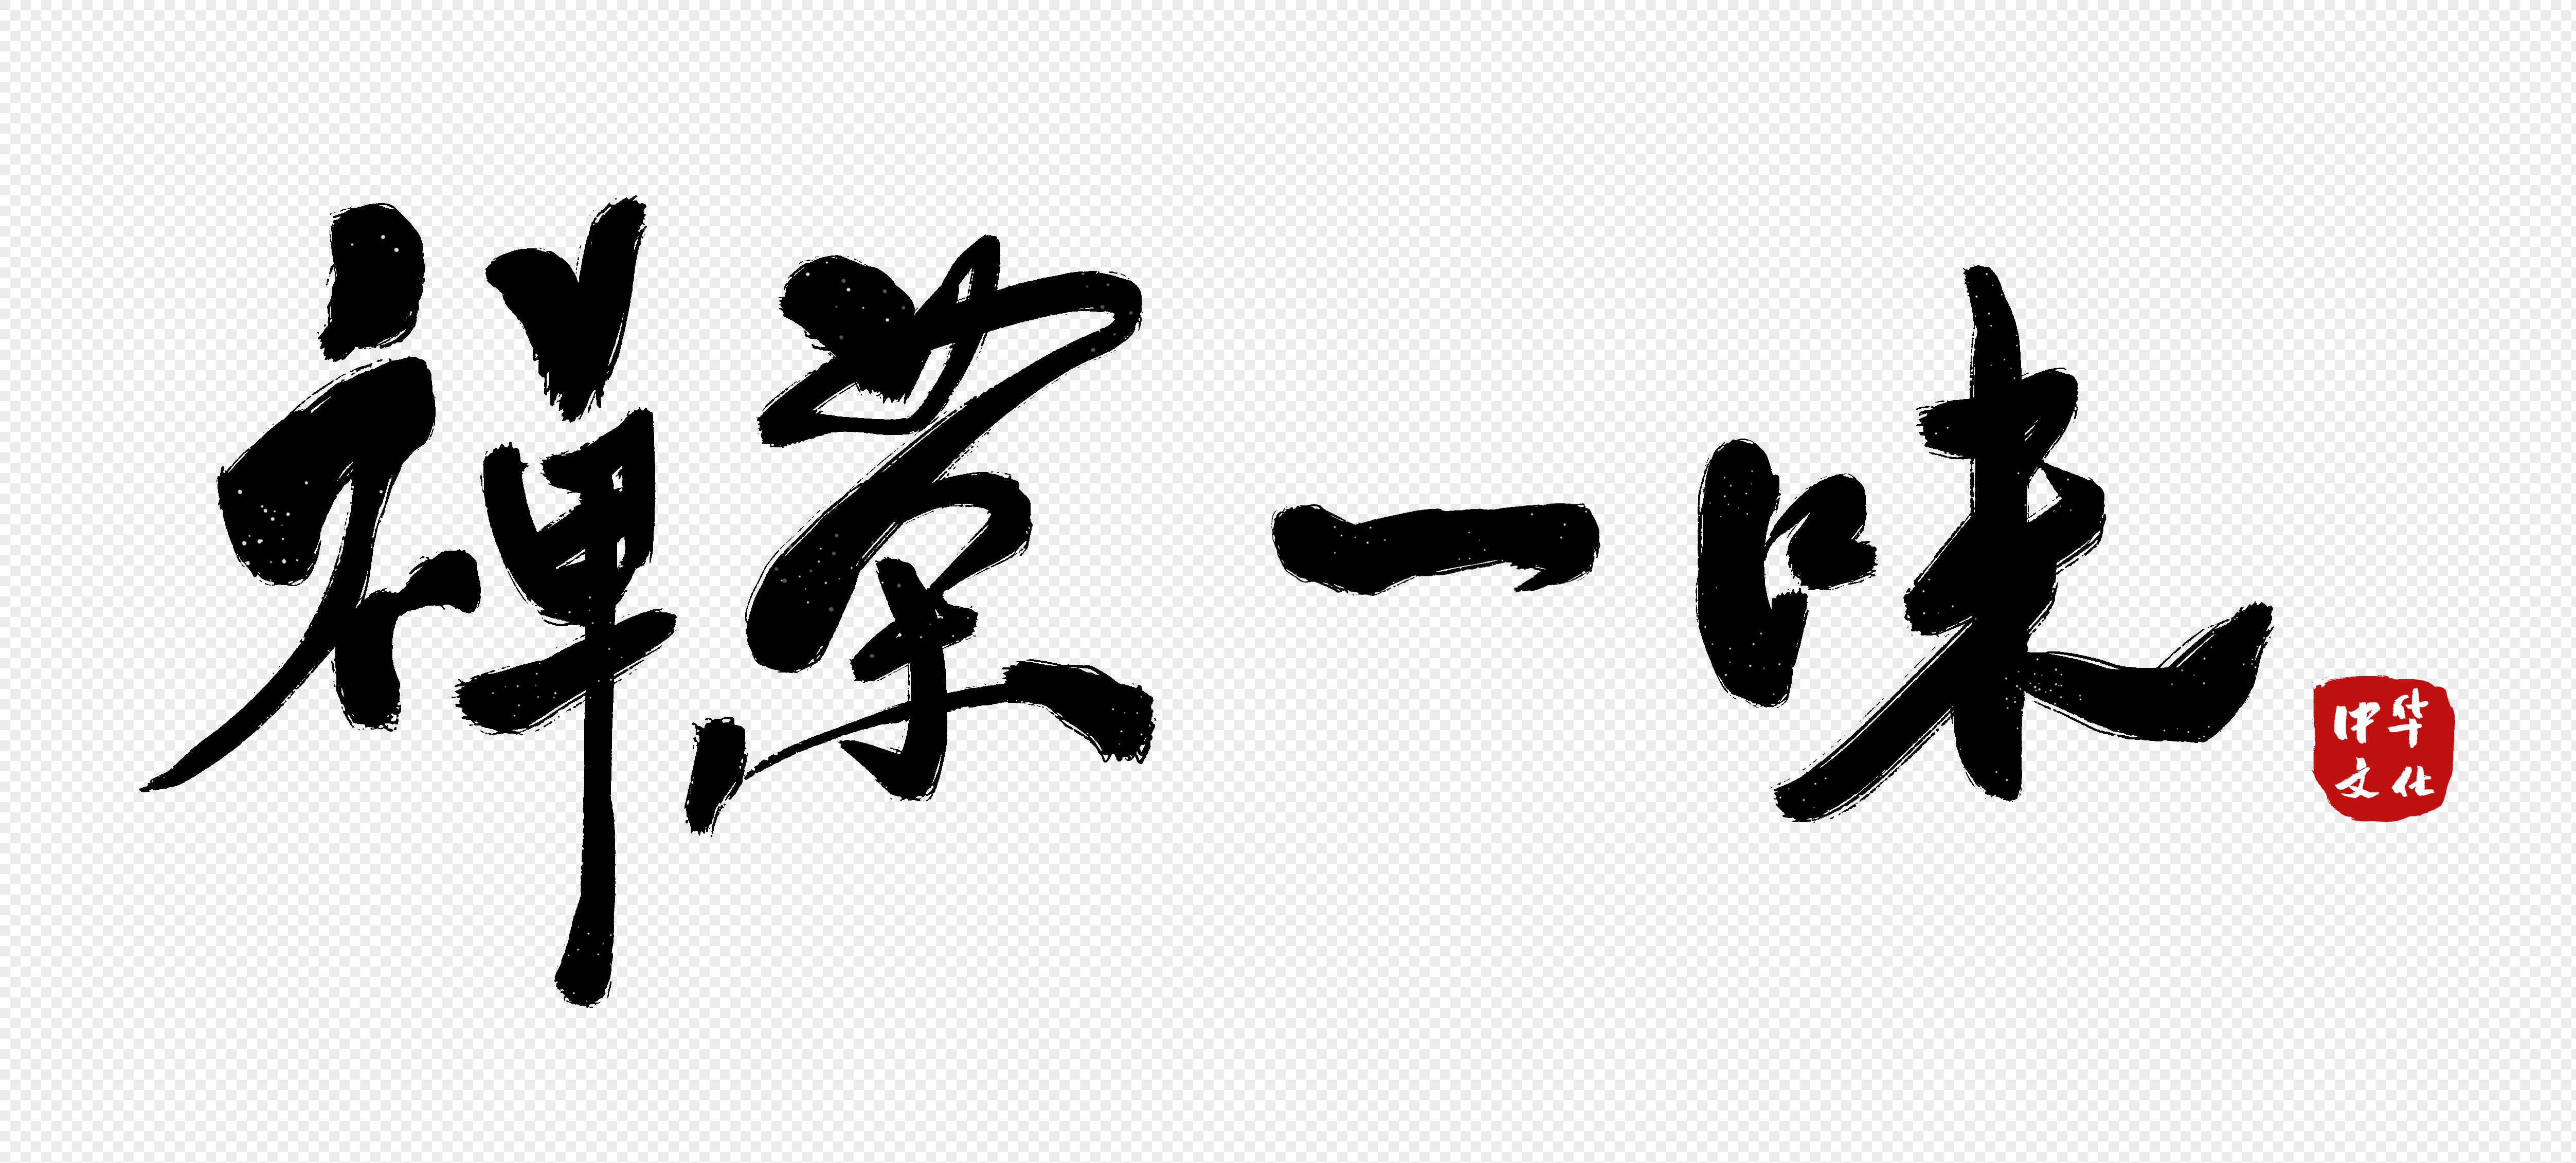 Zen Tea Blindly Chinese Style Ink Brush Font Png Image Picture Free